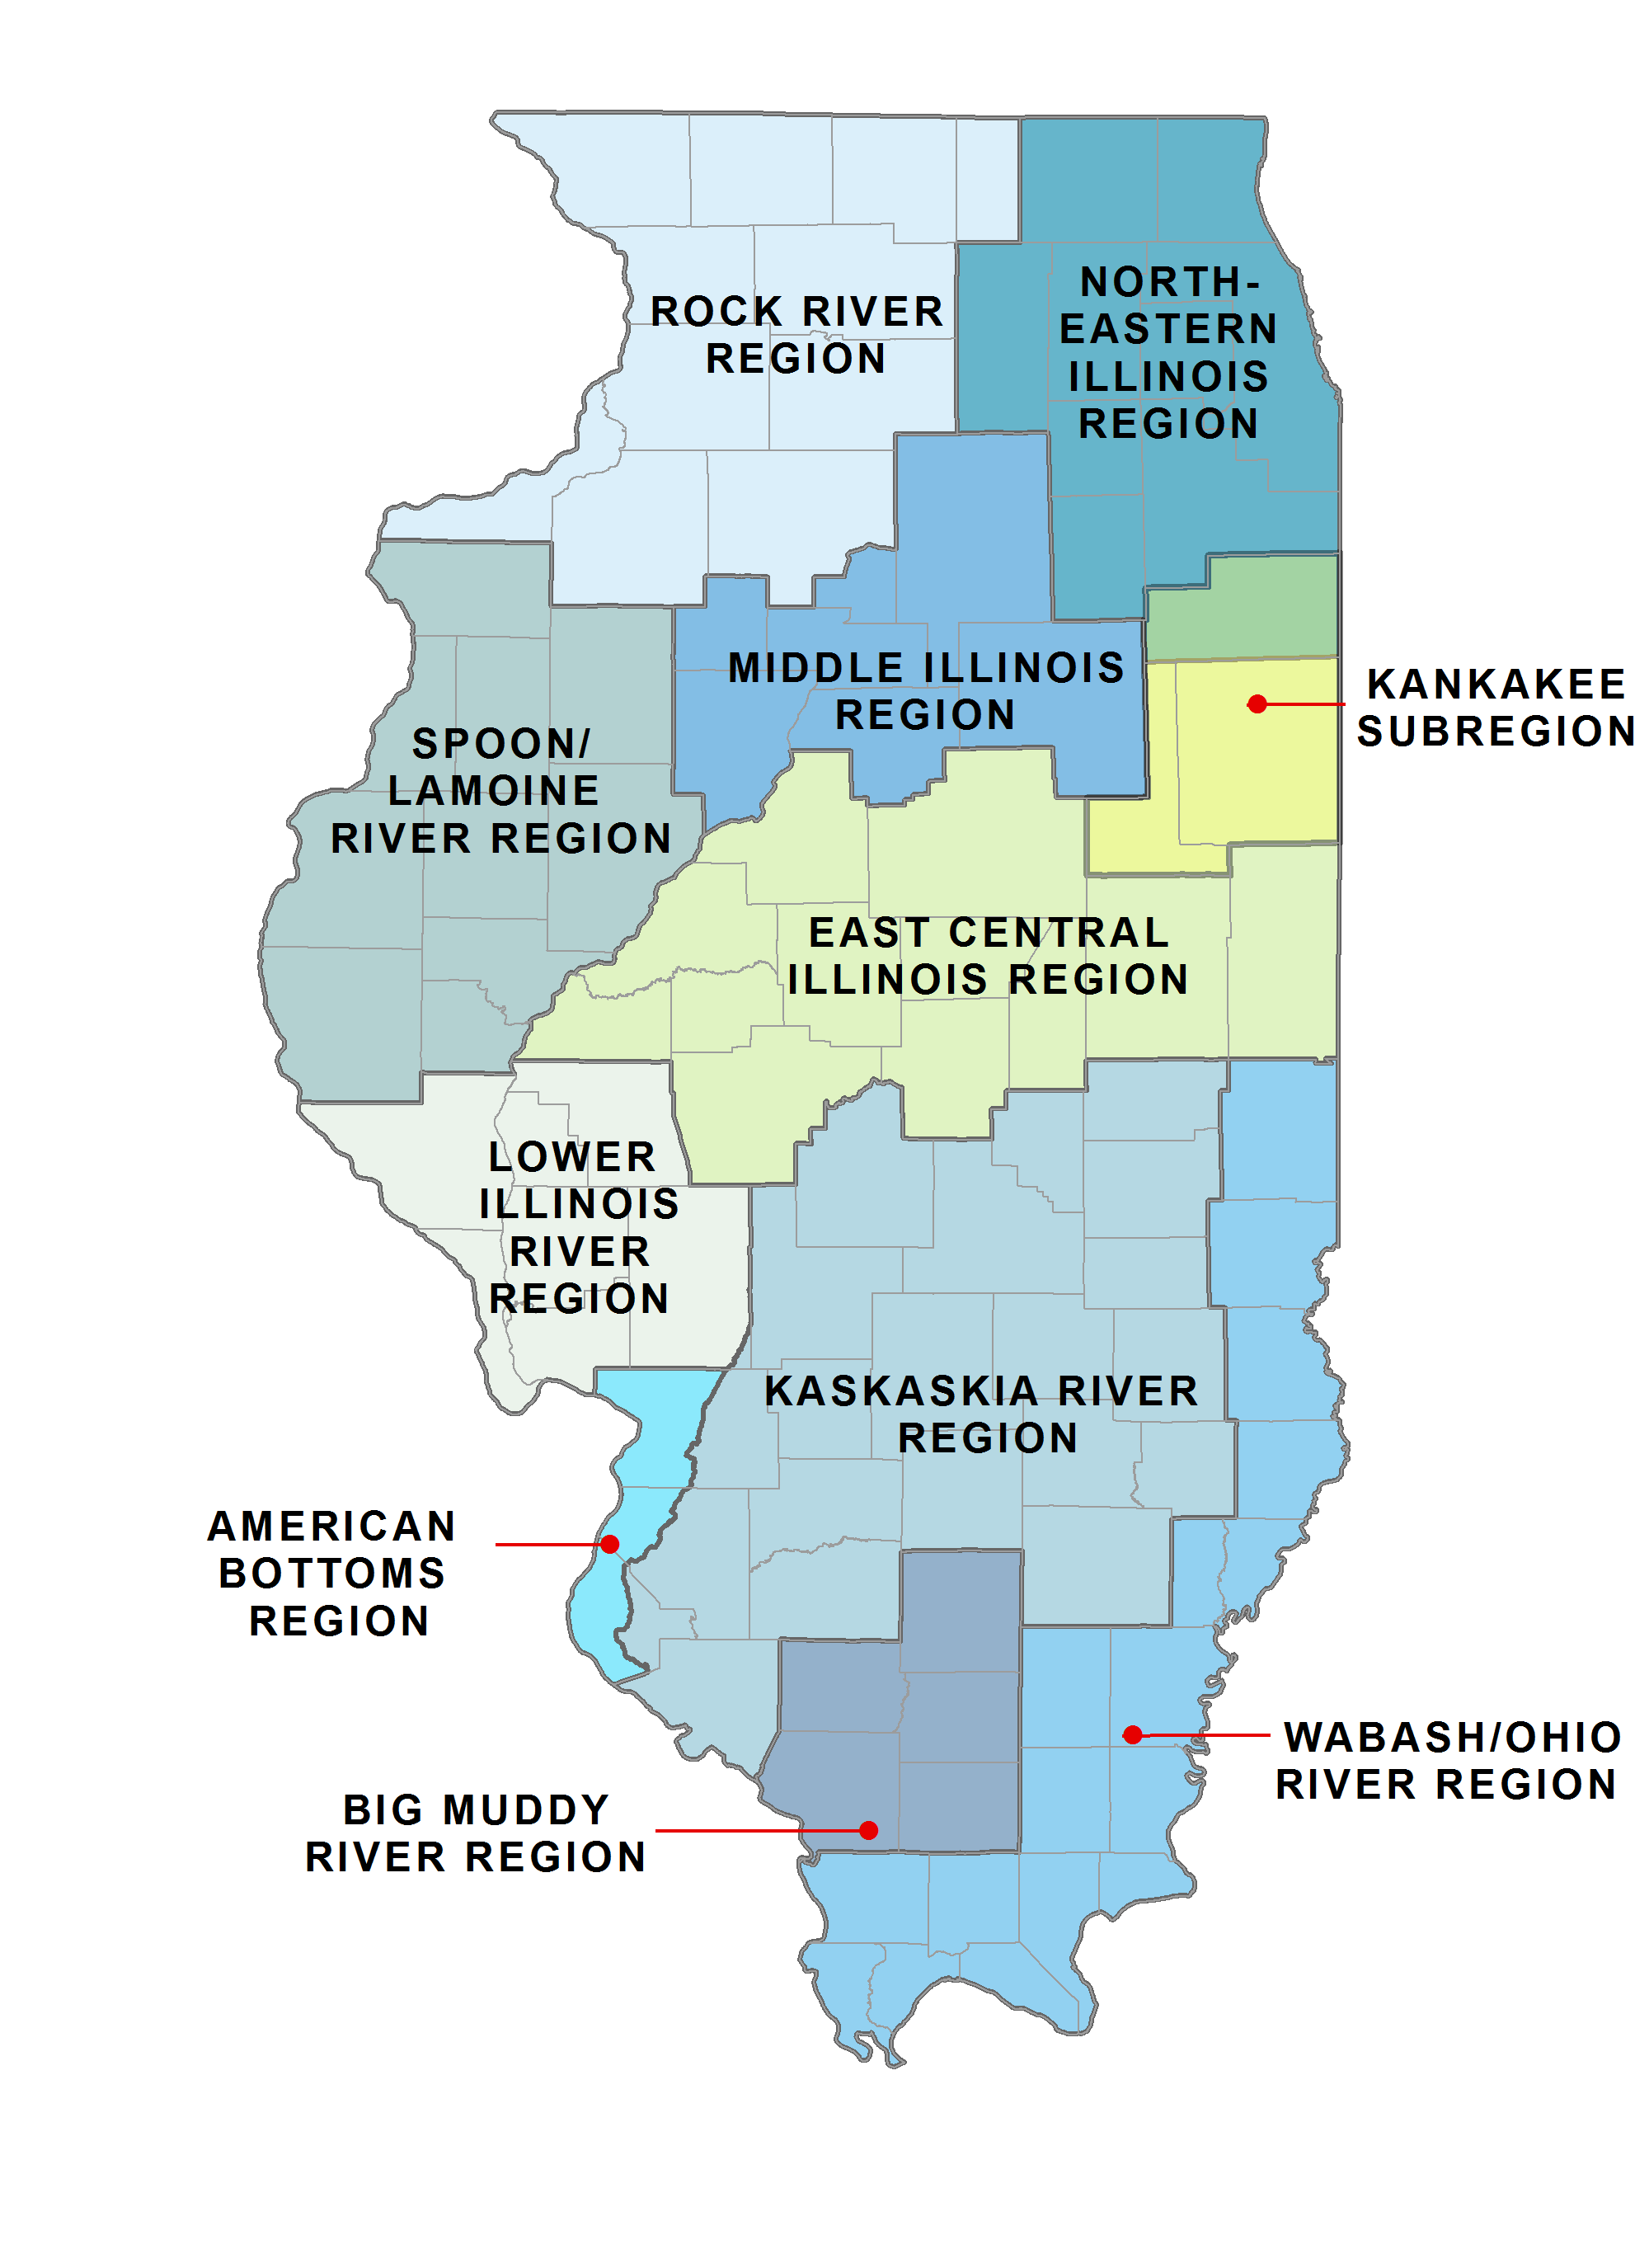 Water Supply Planning Regions